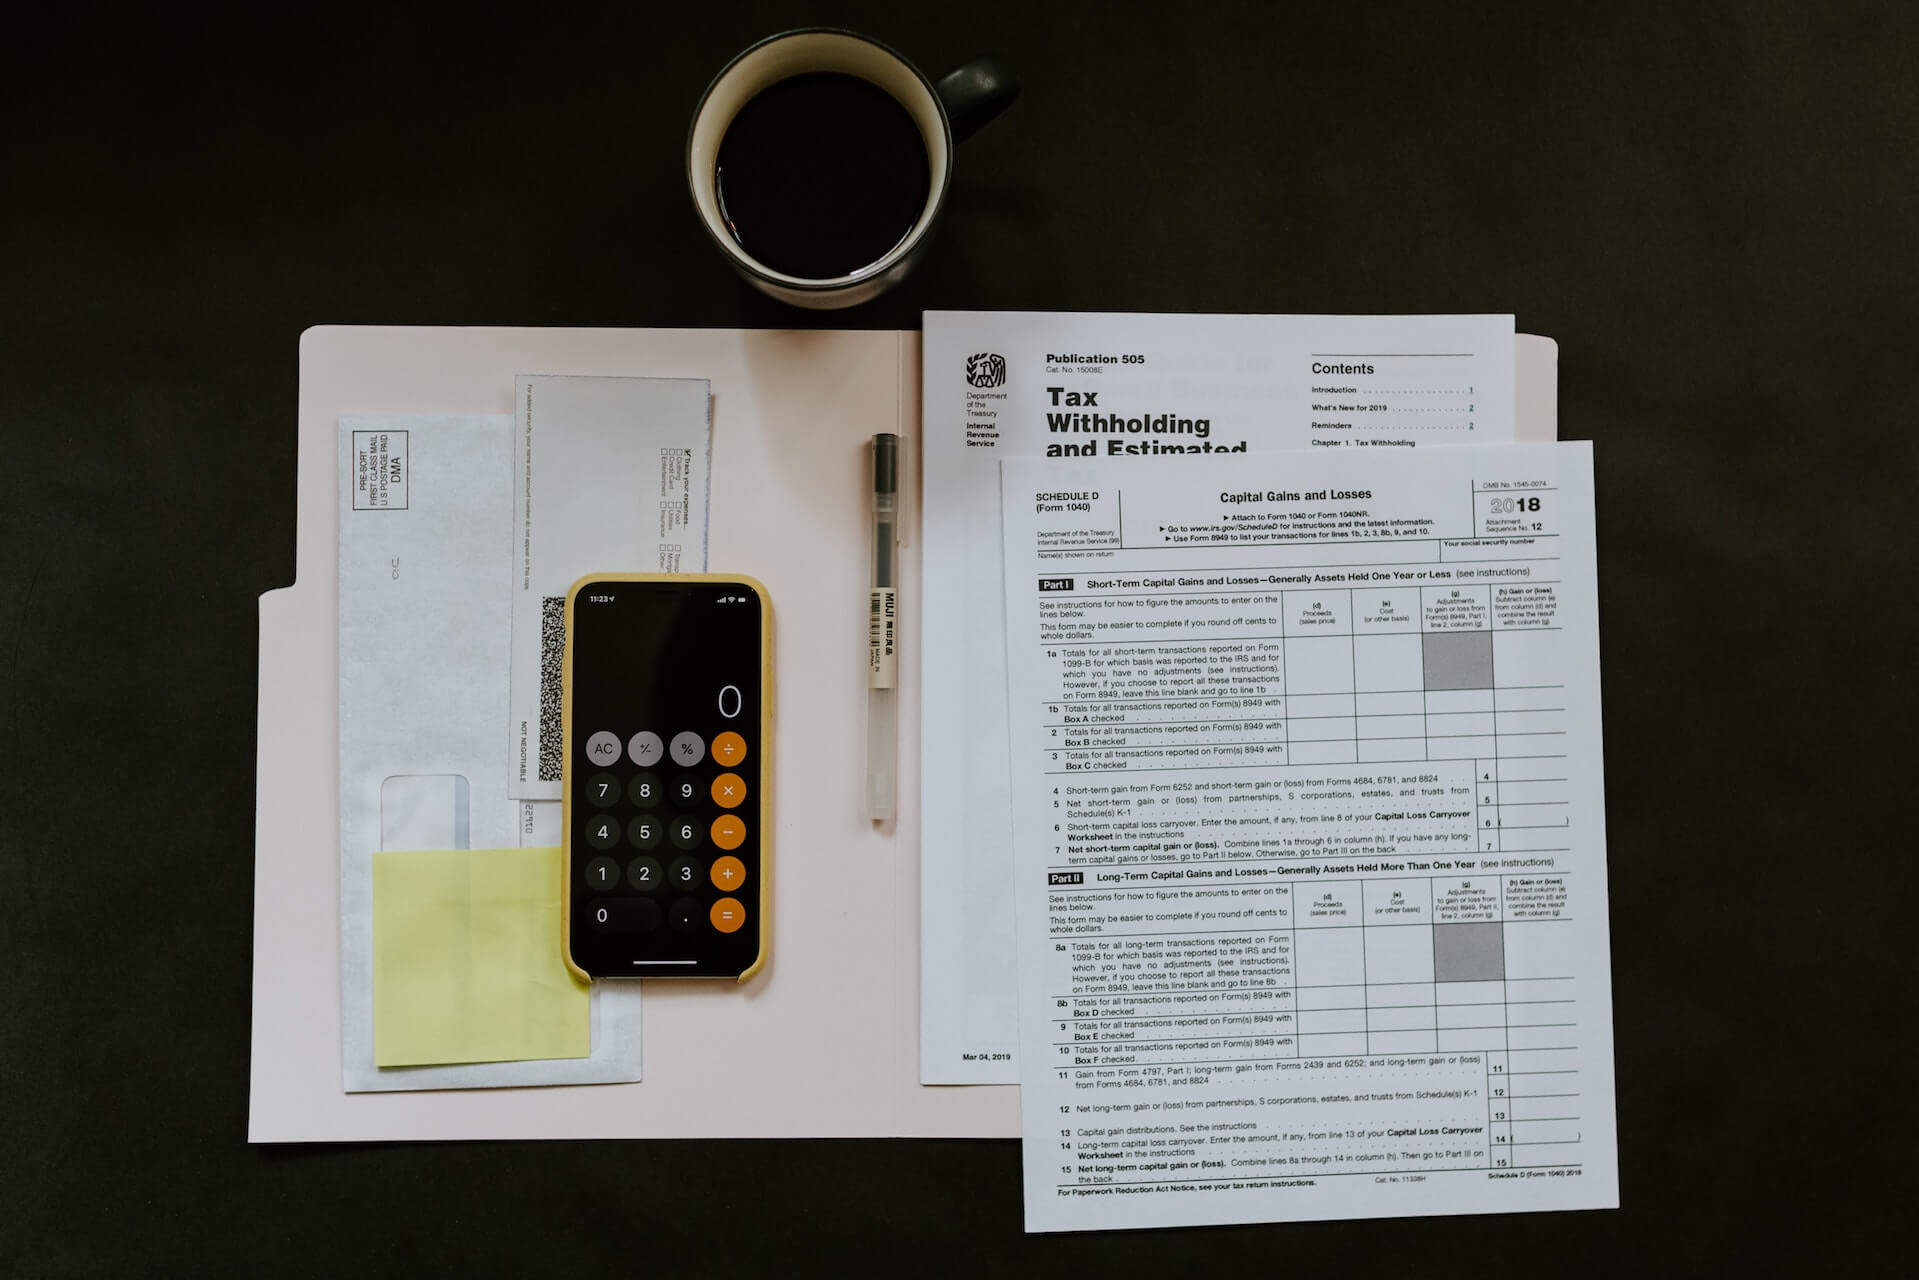 phone calculator, cup of coffee and tax forms laid out on table